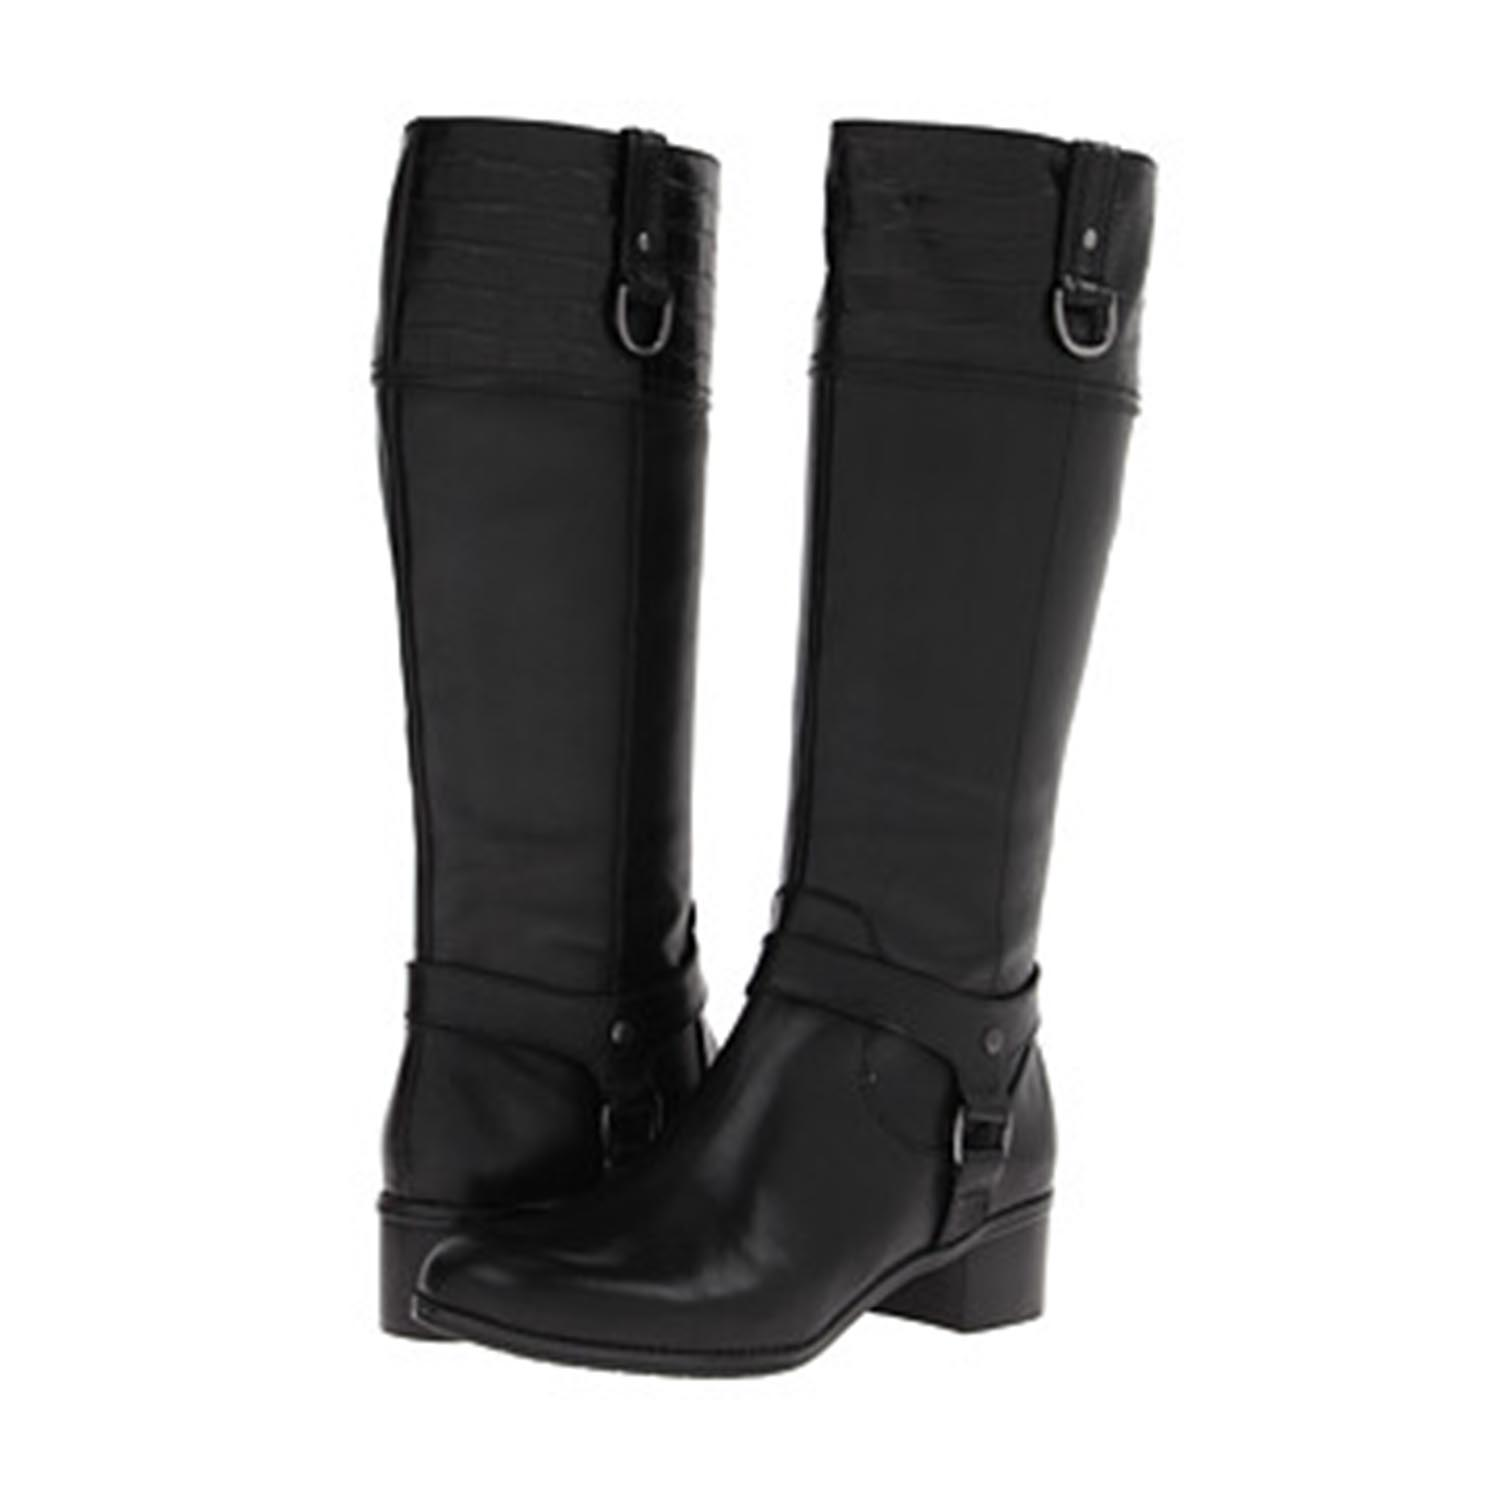 New Womens Black Leather Boots  Newhairstylesformen2014com